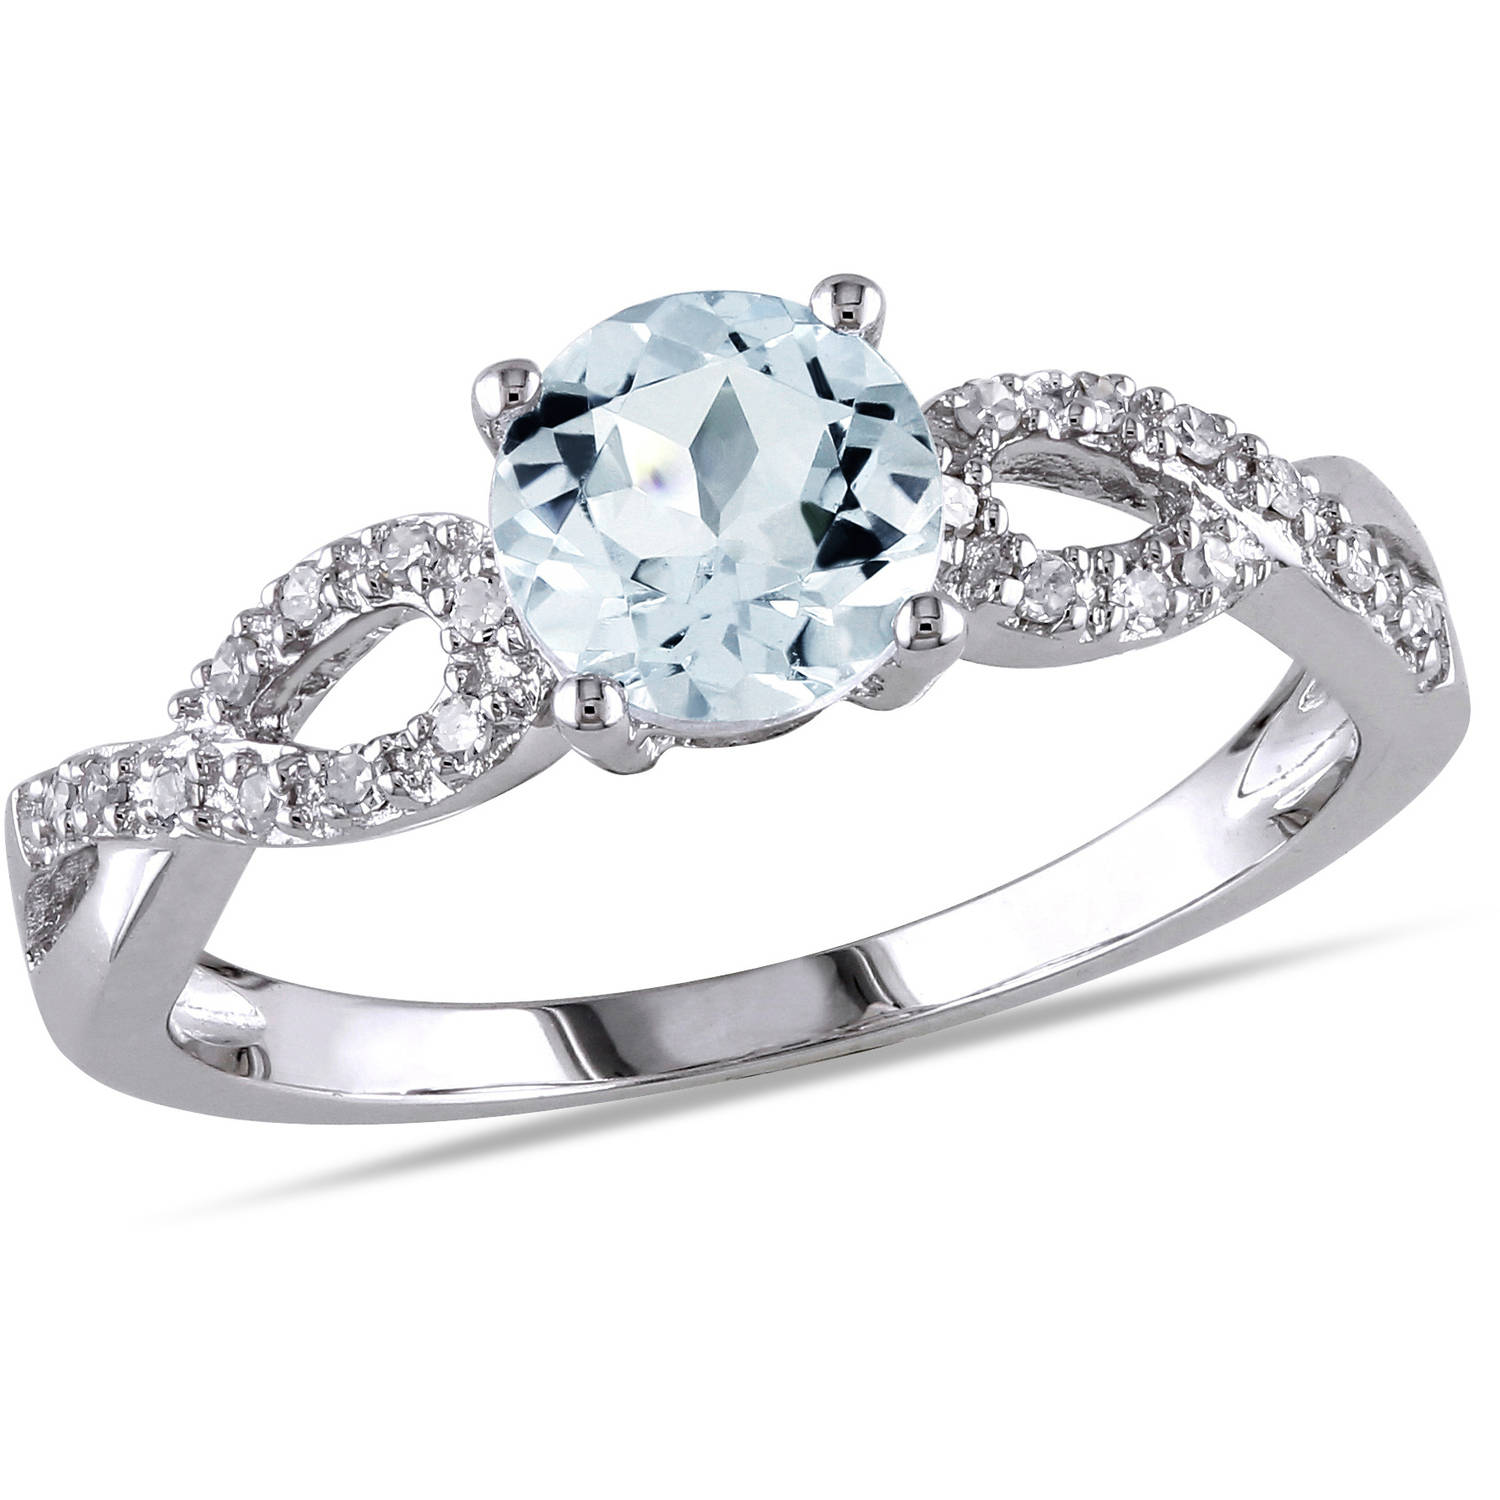 Tangelo 3 4 Carat T.G.W. Aquamarine and Diamond-Accent 10kt Gold Infinity Engagement Ring by Delmar Manufacturing LLC